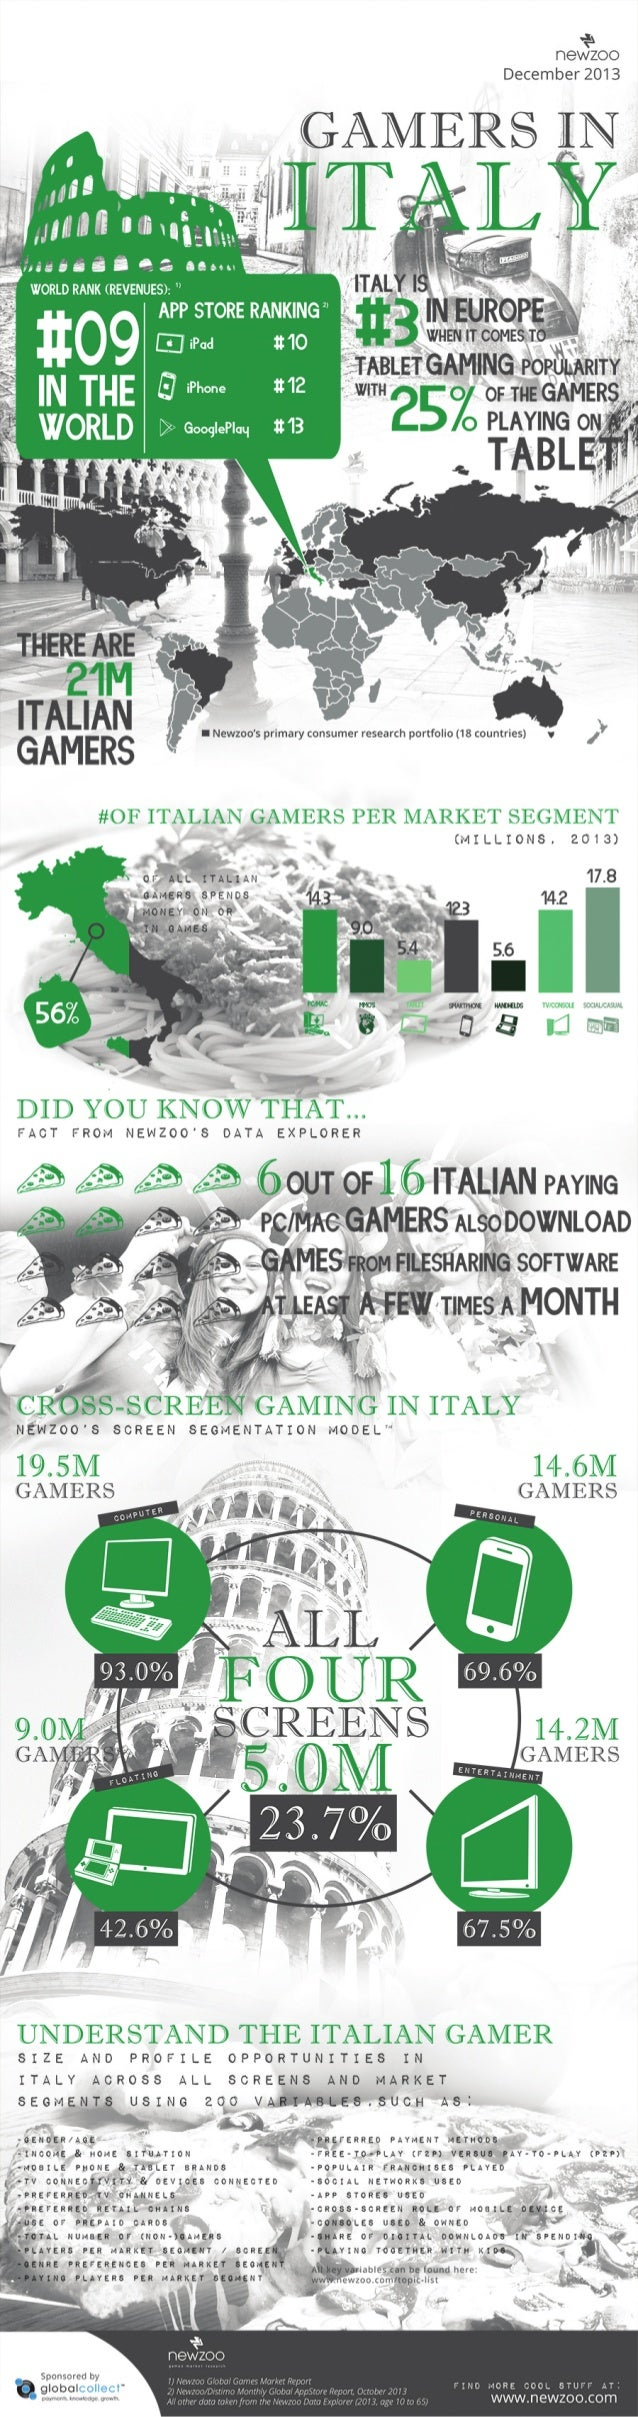 Infographic: The Italian Games Market